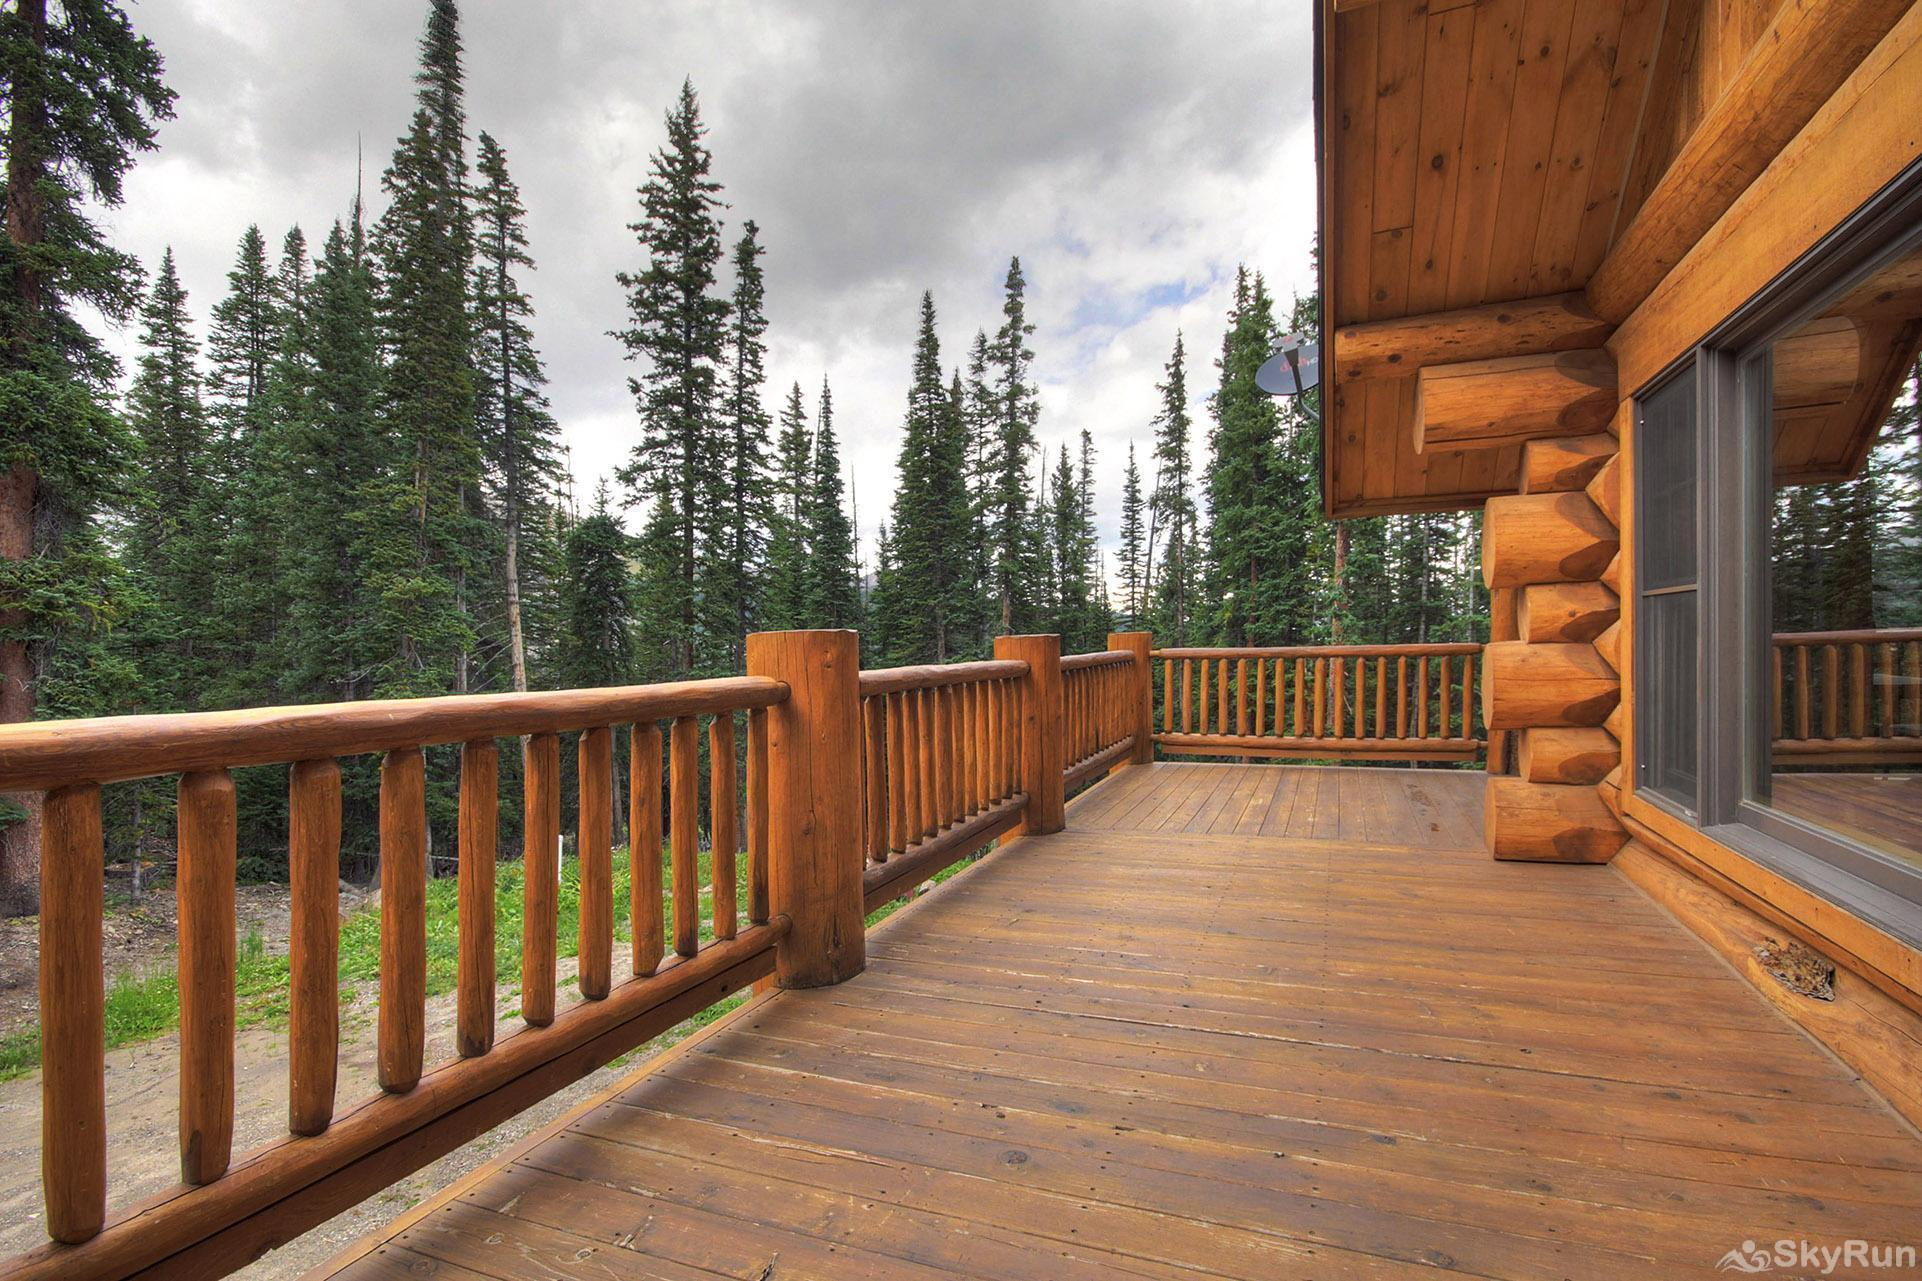 Timber Ridge Lodge Nice large deck